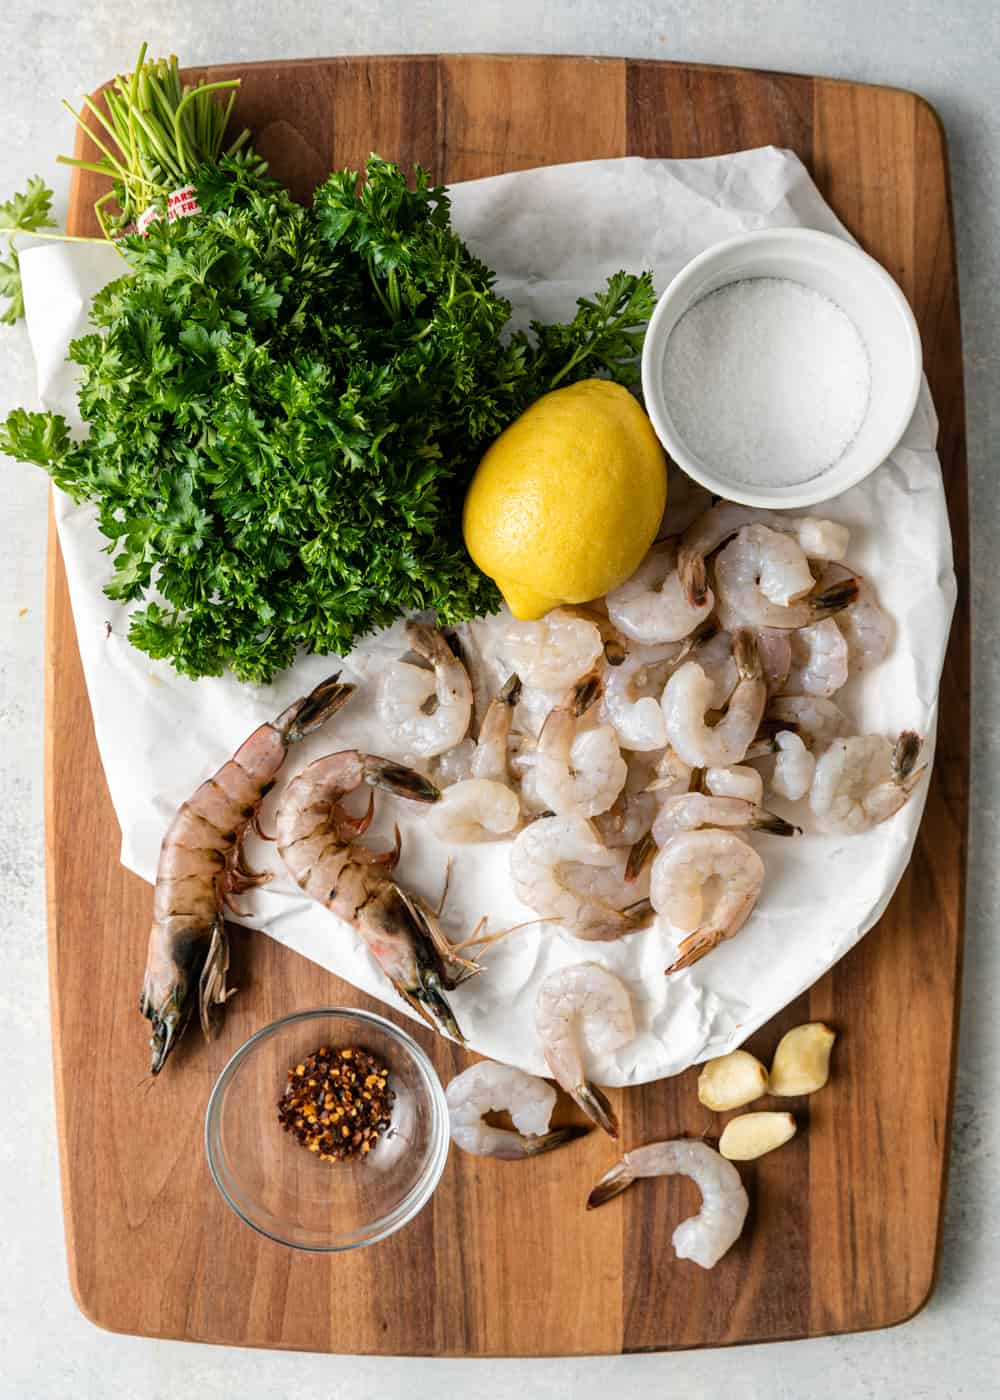 ingredients on cutting board to make shrimp scampi recipe - raw shrimp, butter, garlic, lemon, parsley